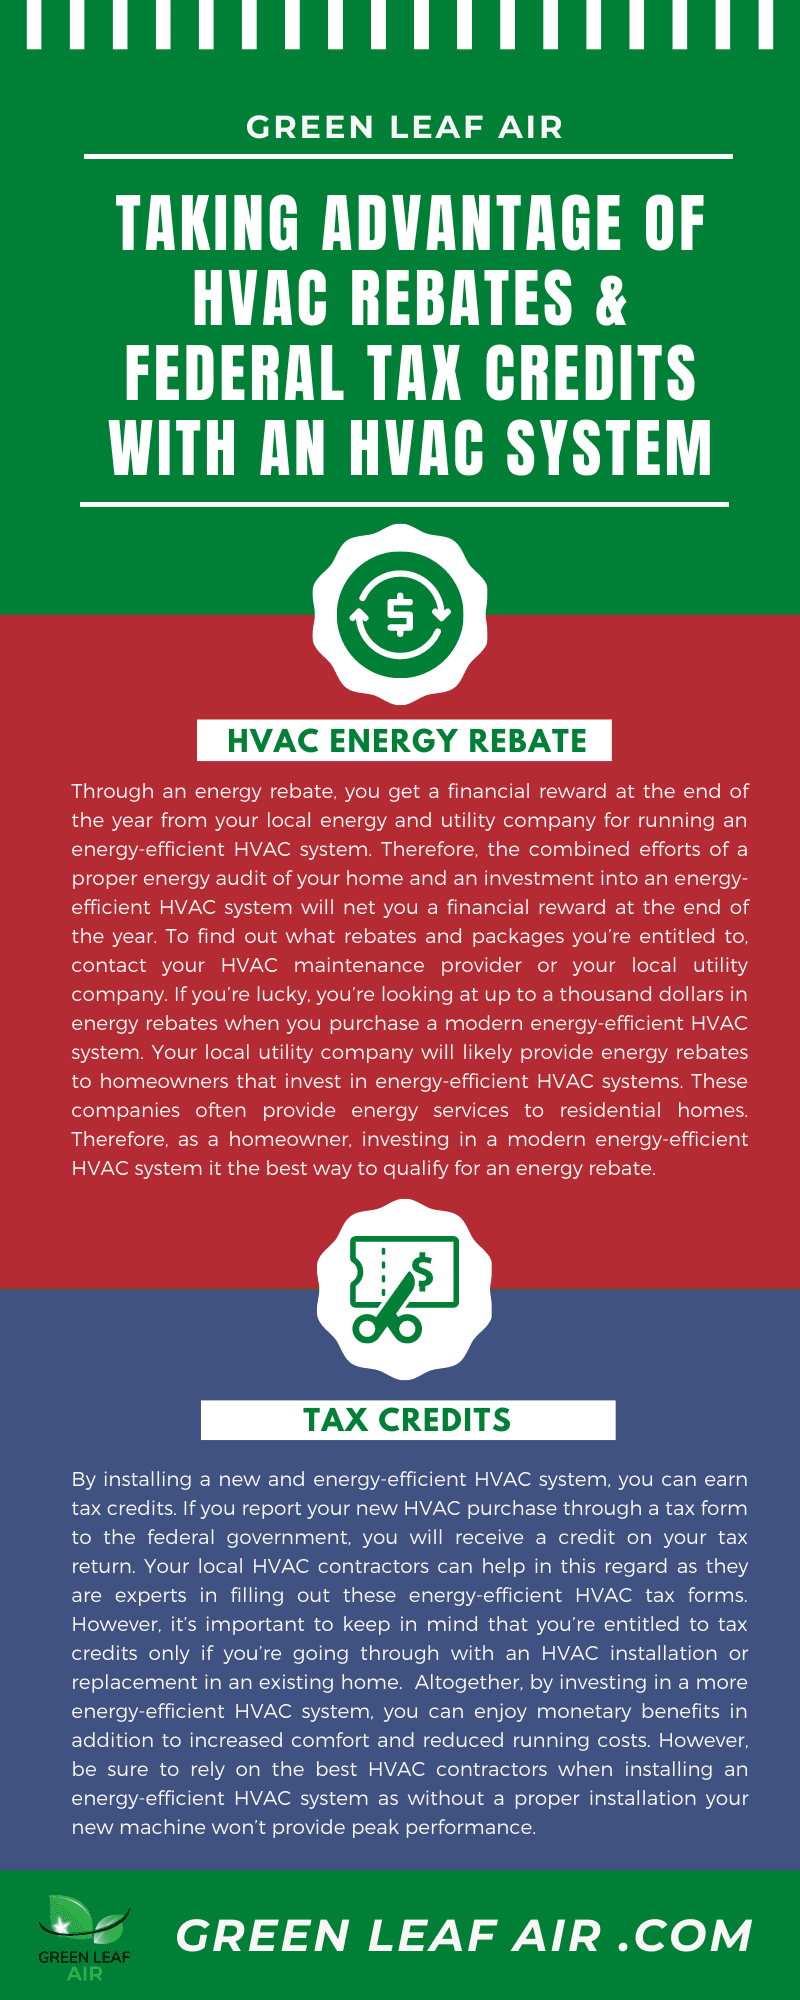 Taking Advantage of HVAC Rebates and Federal Tax Credits with An HVAC System